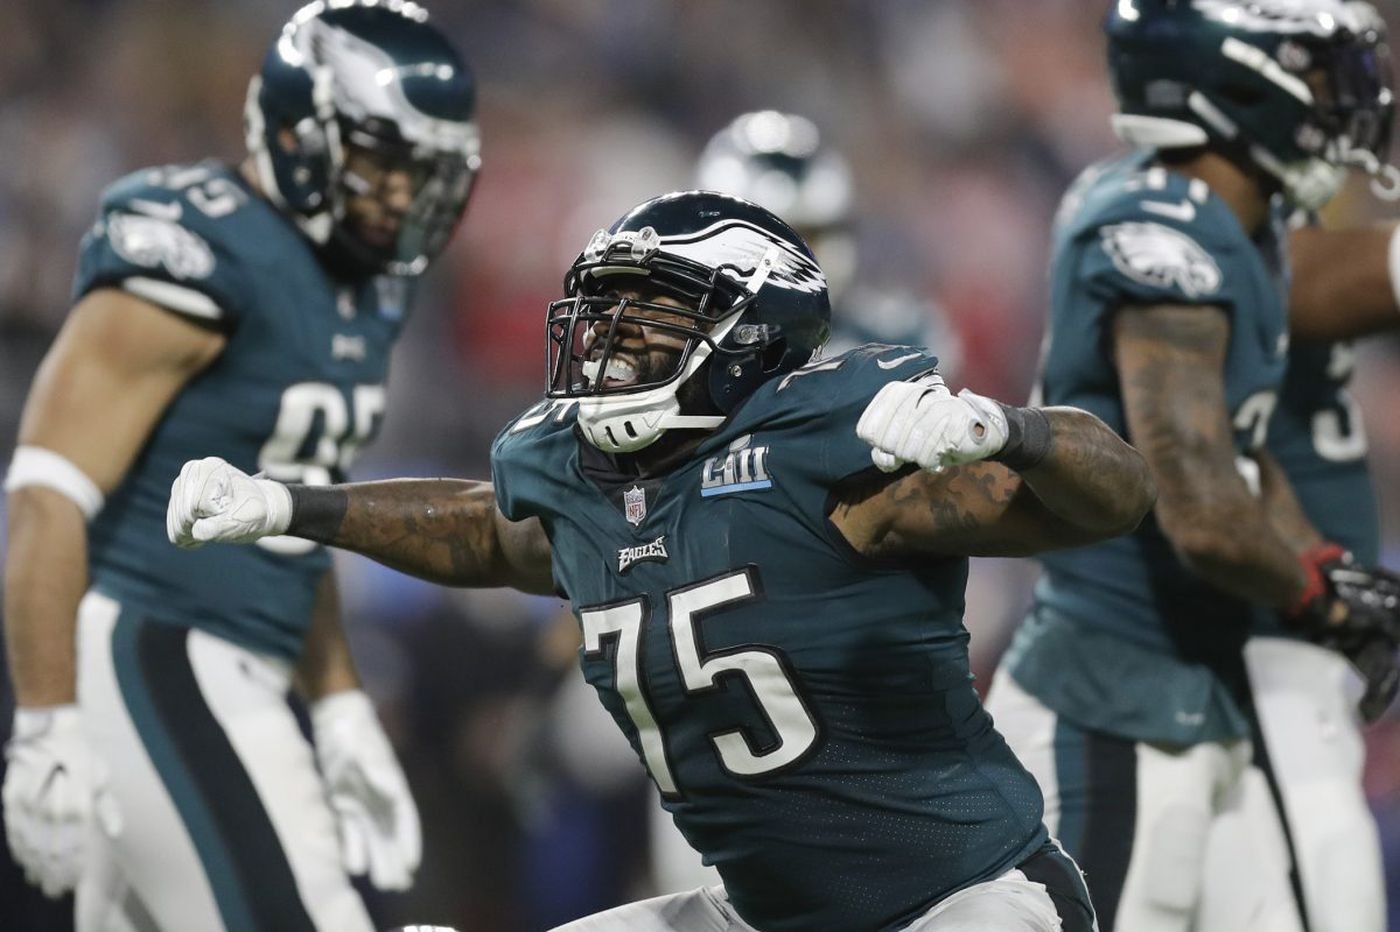 Eagles released defensive end Vinny Curry, saving $5 million from salary cap